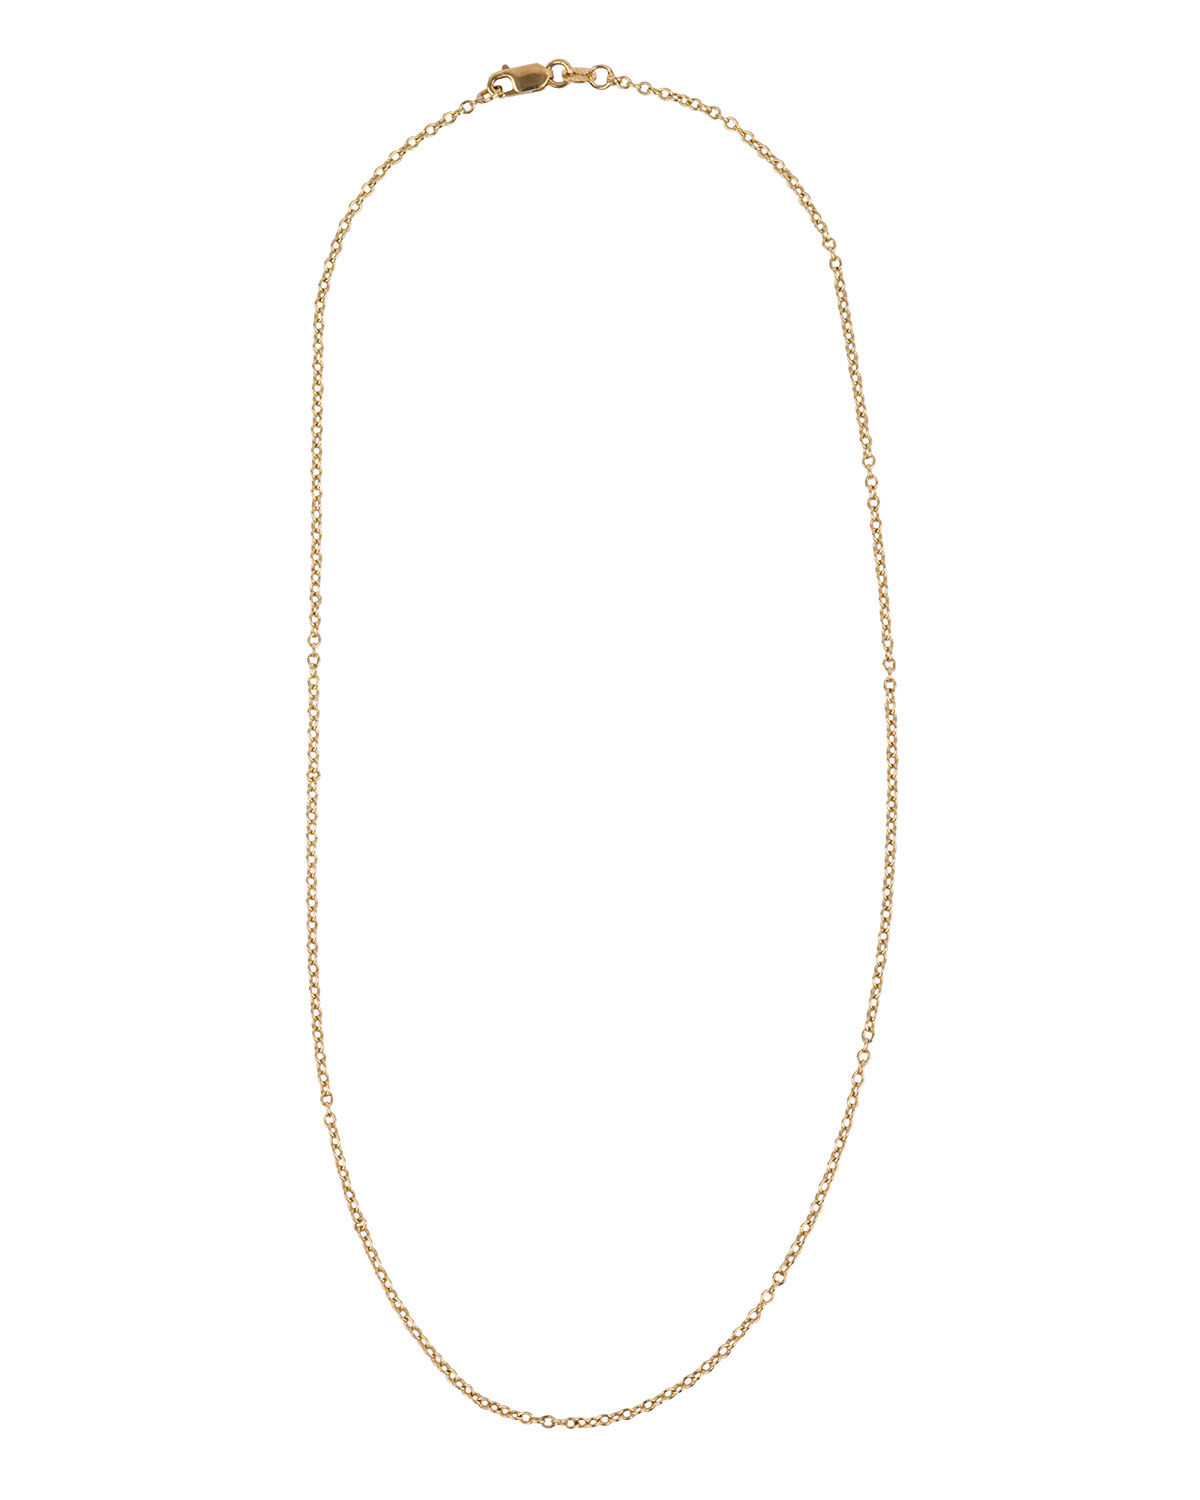 "KONSTANTINO 18K YELLOW GOLD PETITE CHAIN NECKLACE, 16""L"